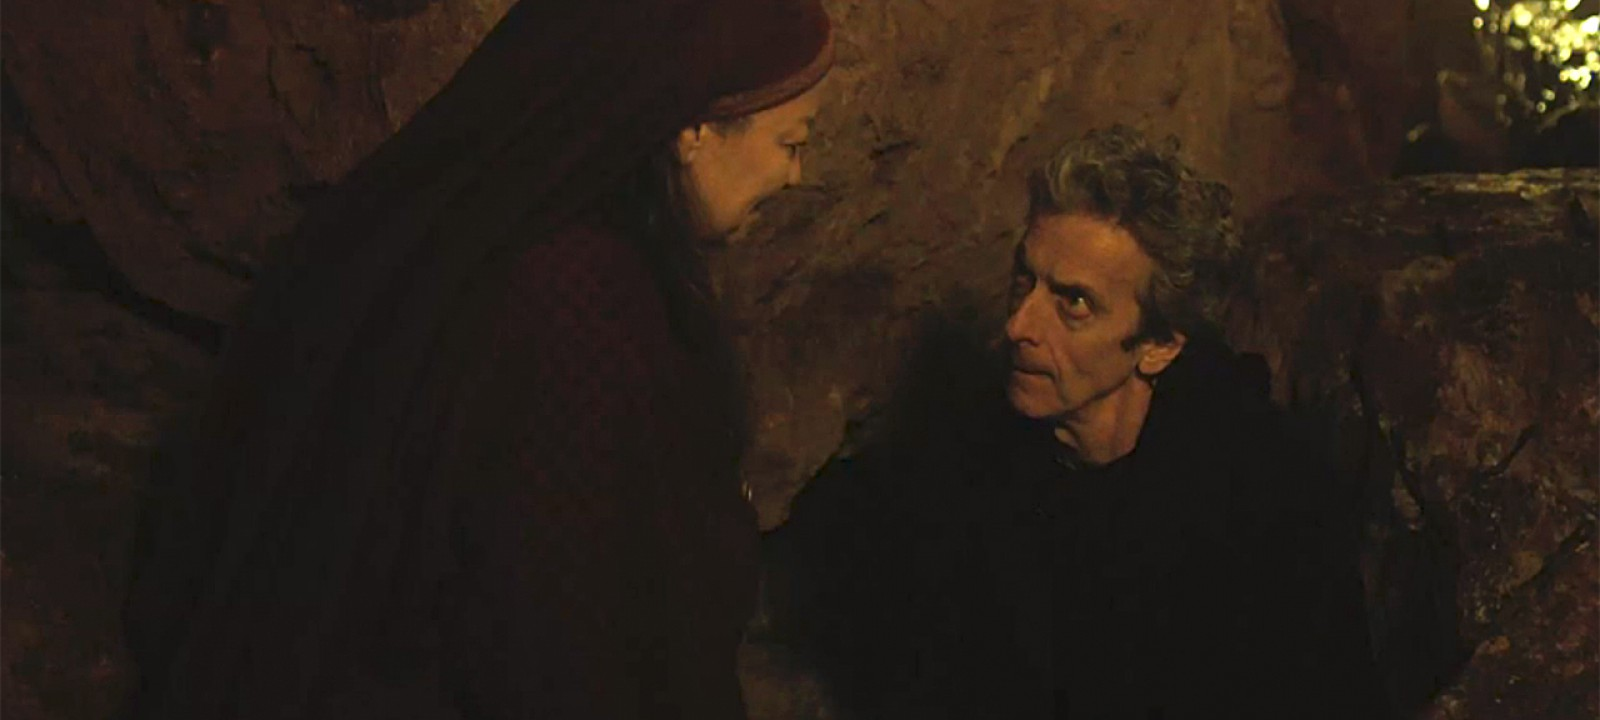 'Doctor Who' Season 9 Prologue (Photo: BBC)